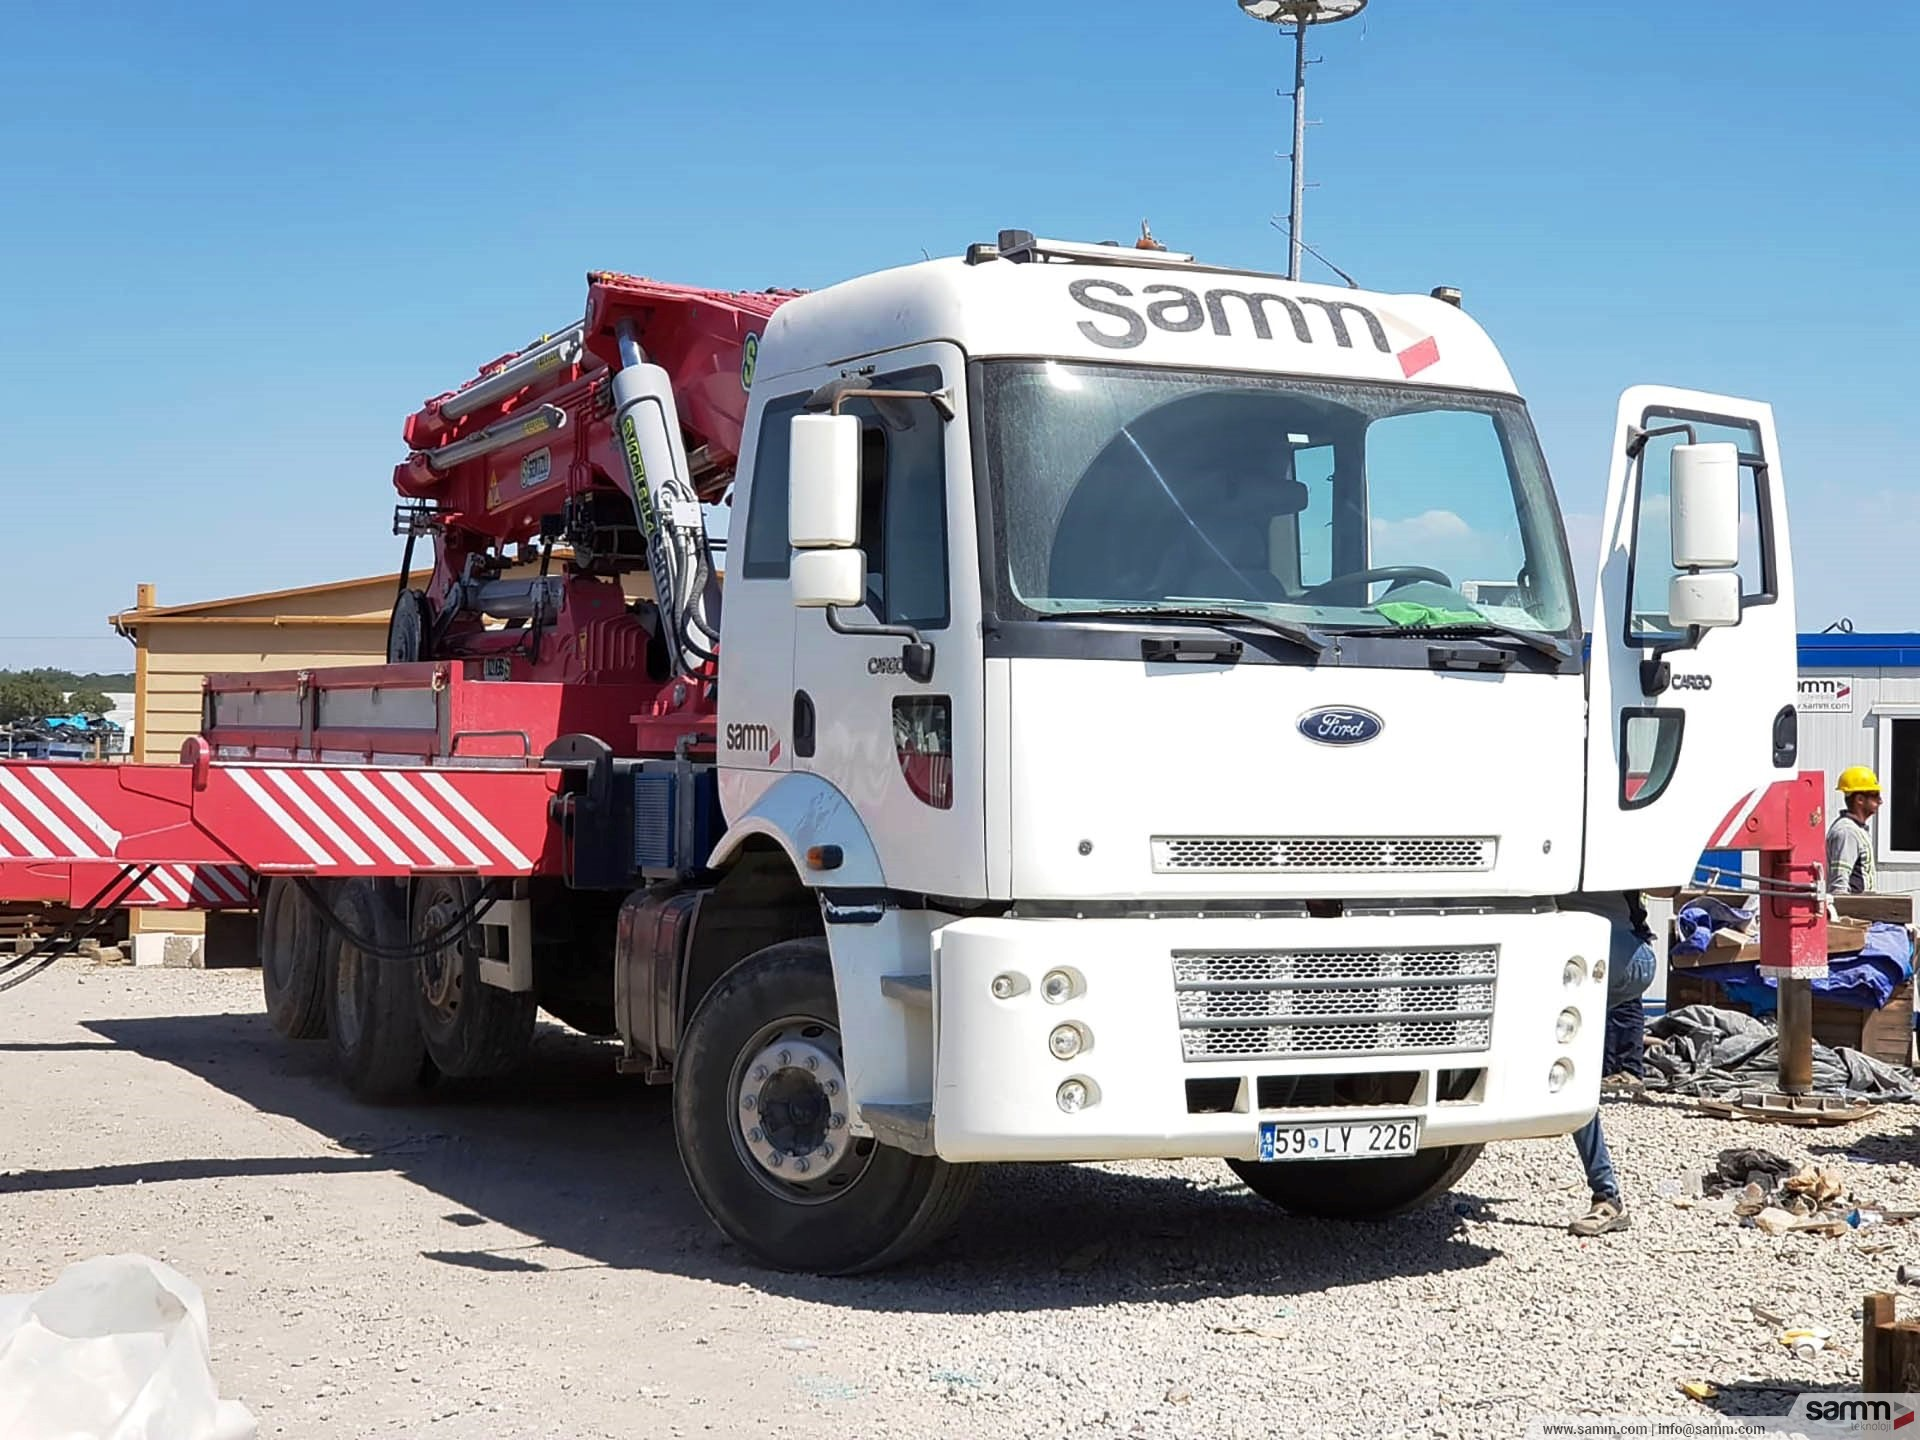 Samm Teknoloji | Particularly, hi-up is included in our vehicle fleet in order to speed up cable pulling and equipment installation durations.